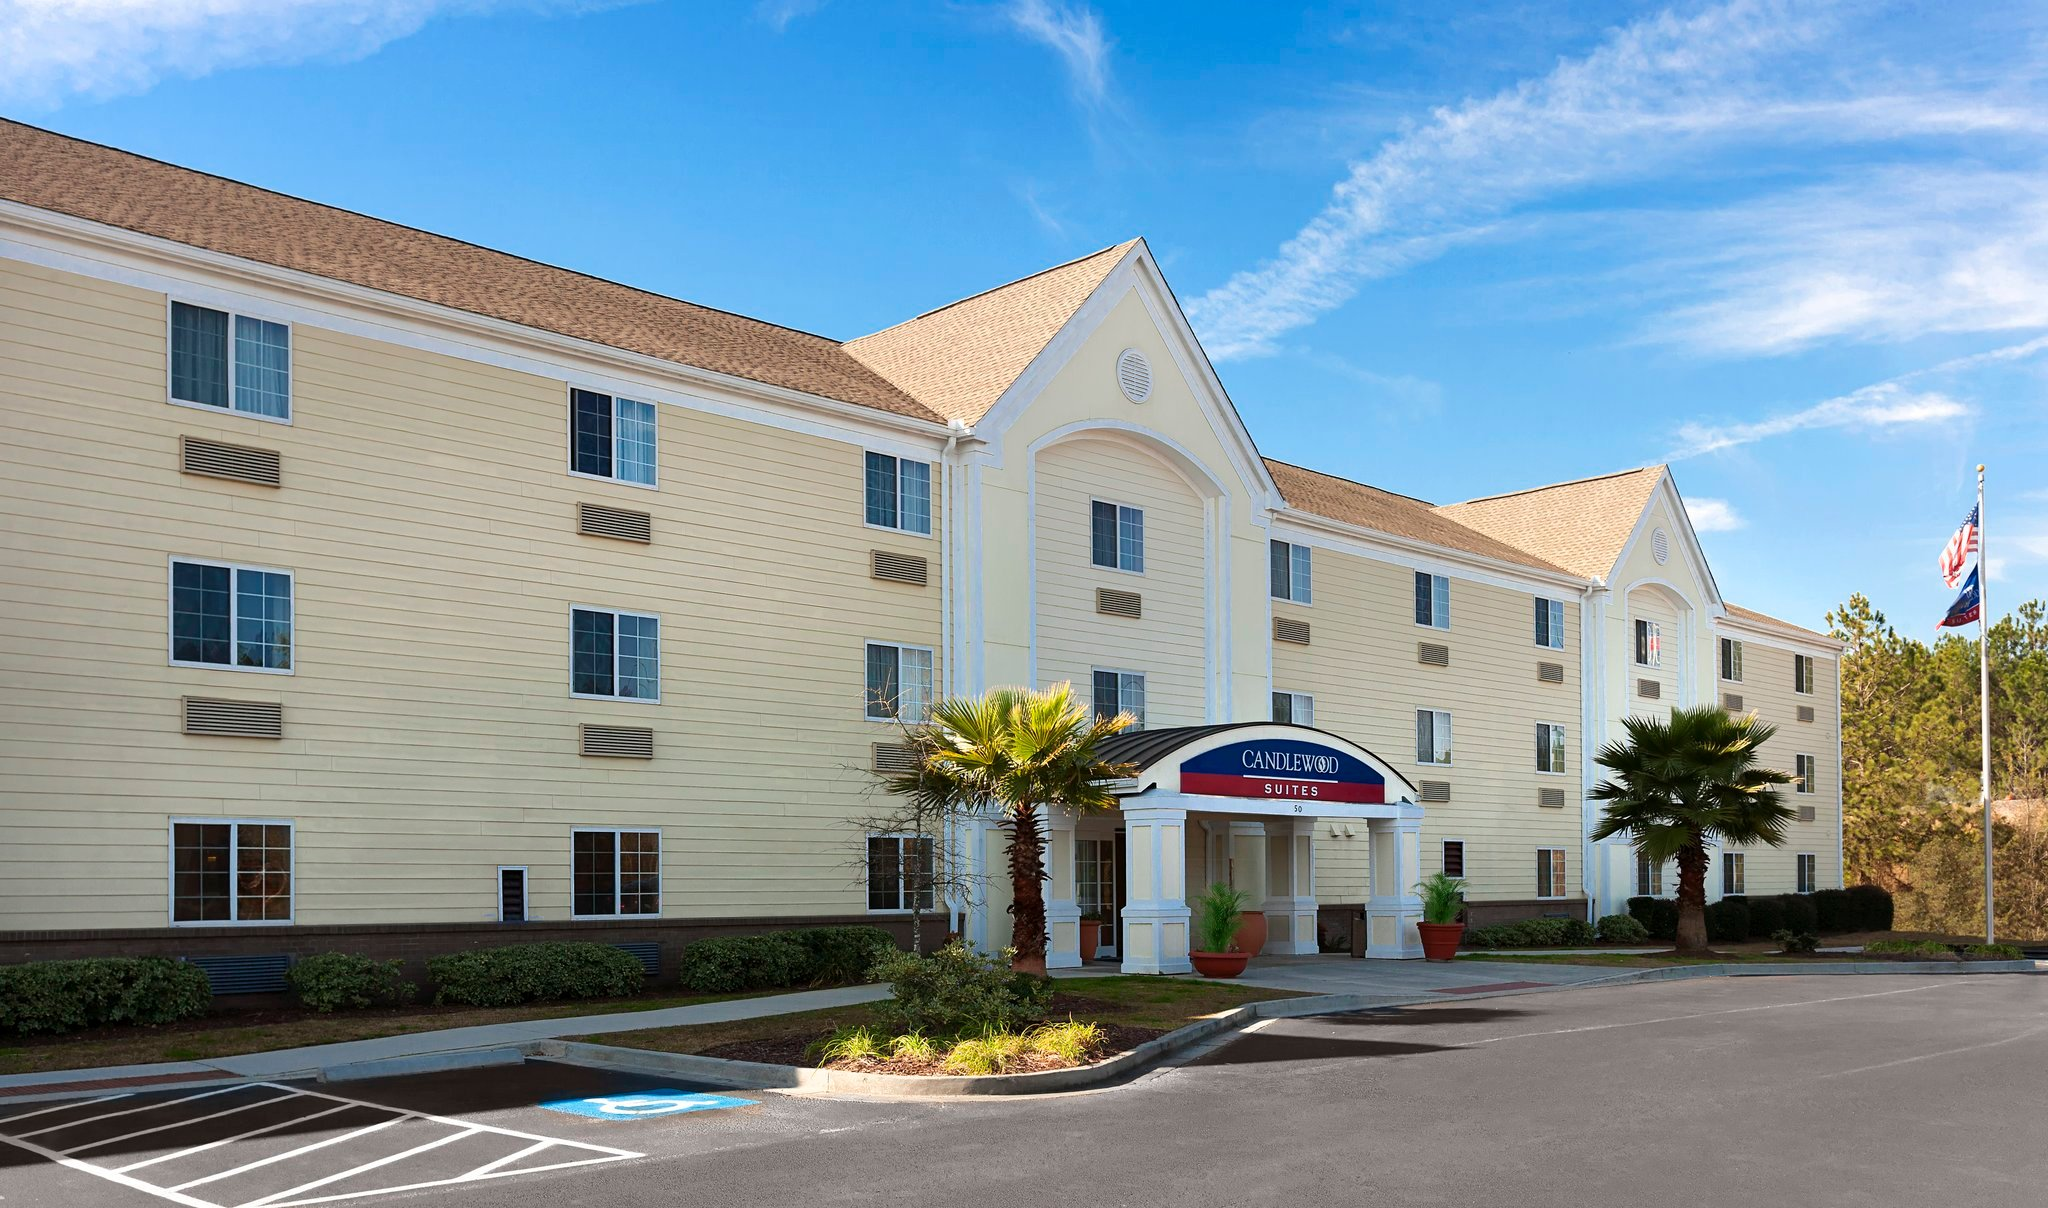 Candlewood Suites Savannah Airport